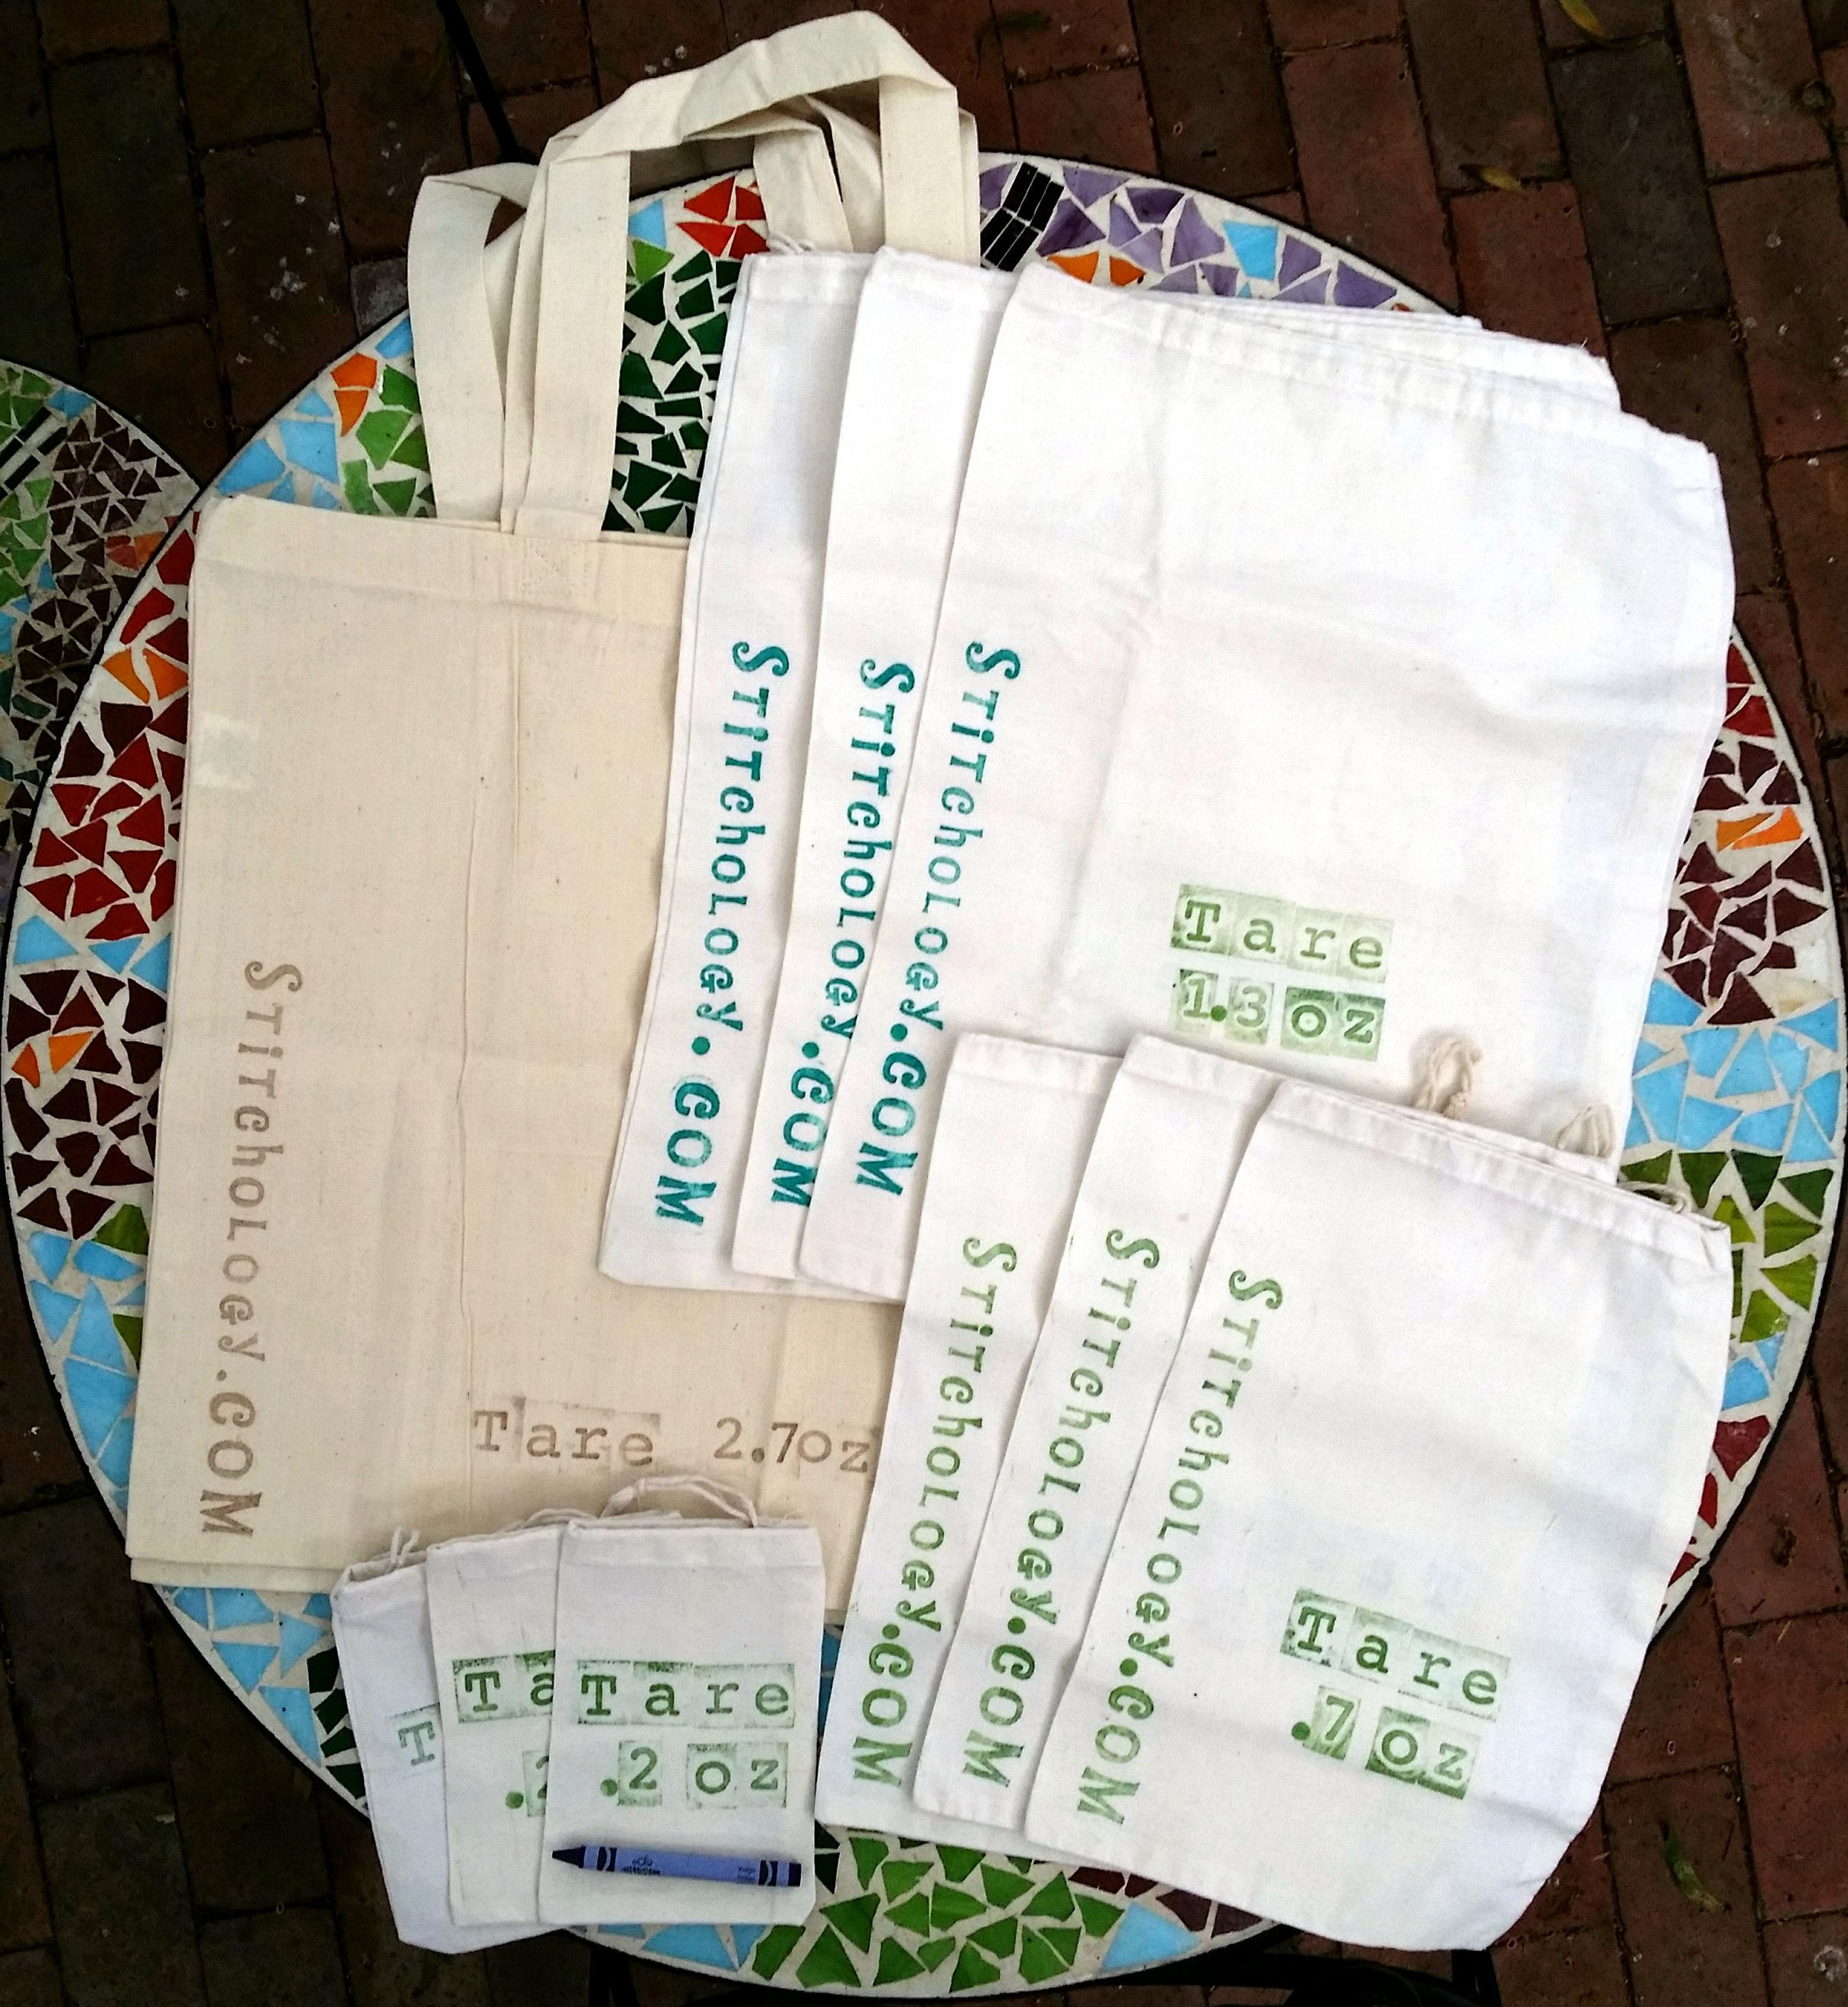 Love the idea to stamp the tare weight on produce bags! Makes it very easy for the checker.